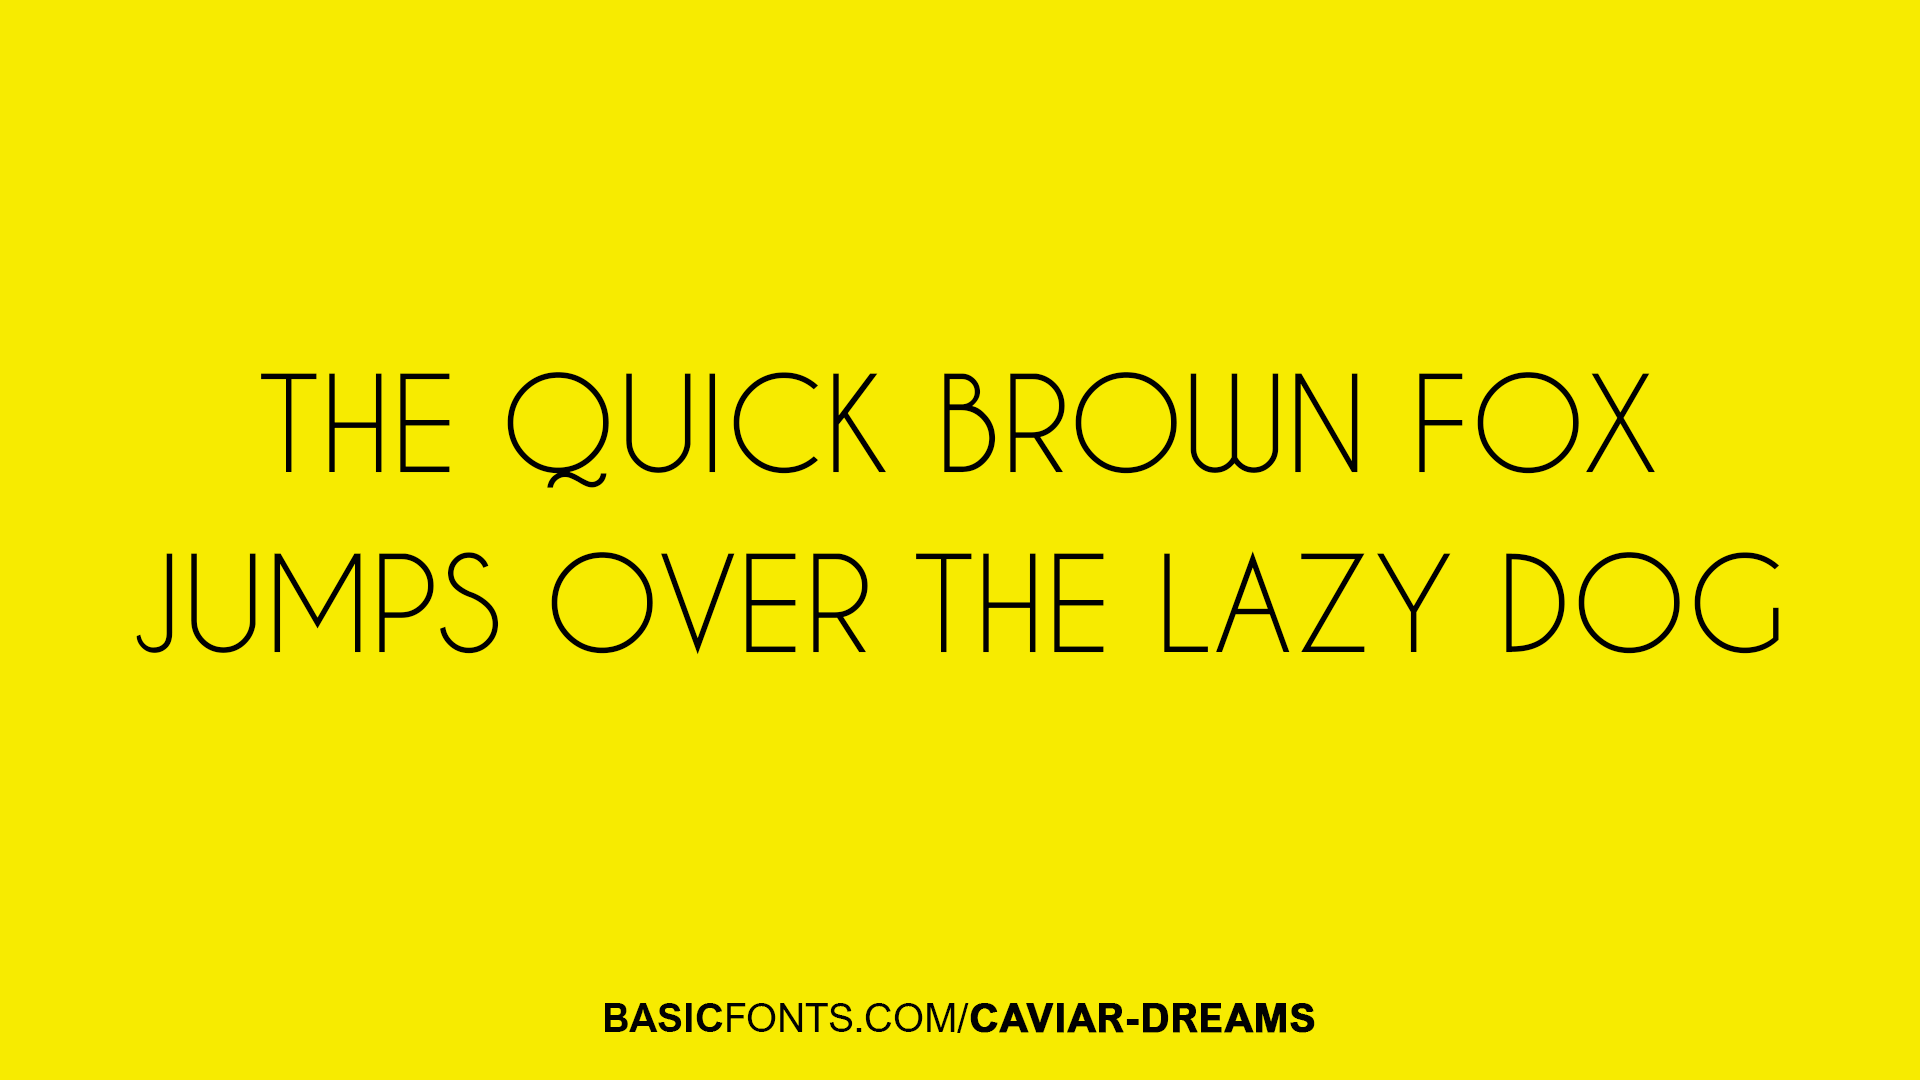 Where can I download premium fonts? - Quora